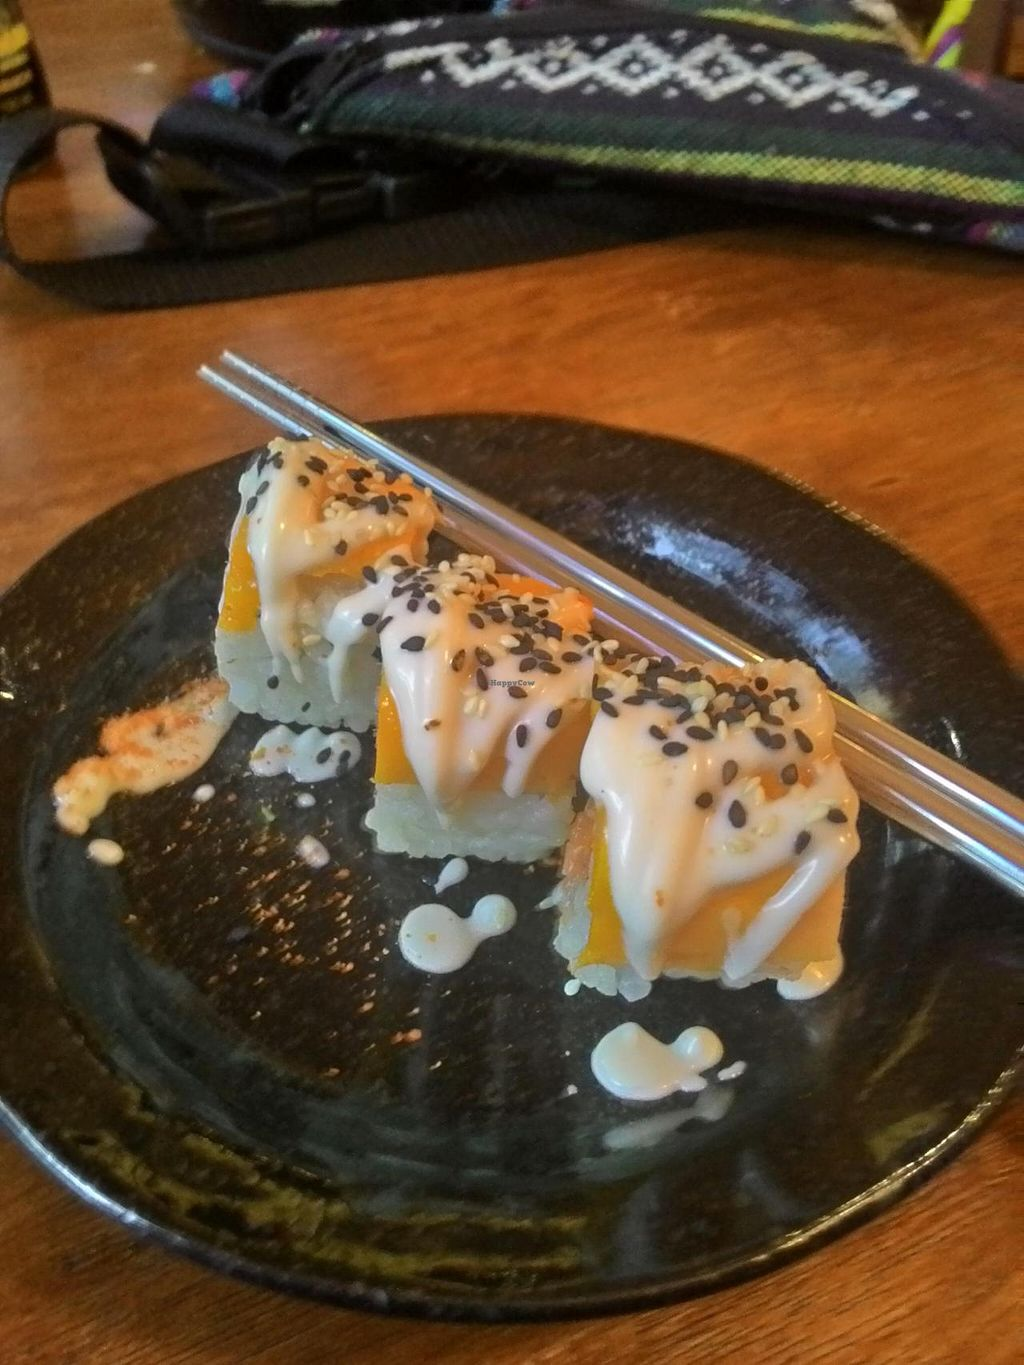 """Photo of Sushi Kitchen - Sungai Ara  by <a href=""""/members/profile/RenkeFlexanist"""">RenkeFlexanist</a> <br/>'Golden Age' inside-out roll, simply amazing! <br/> September 12, 2014  - <a href='/contact/abuse/image/22027/79645'>Report</a>"""